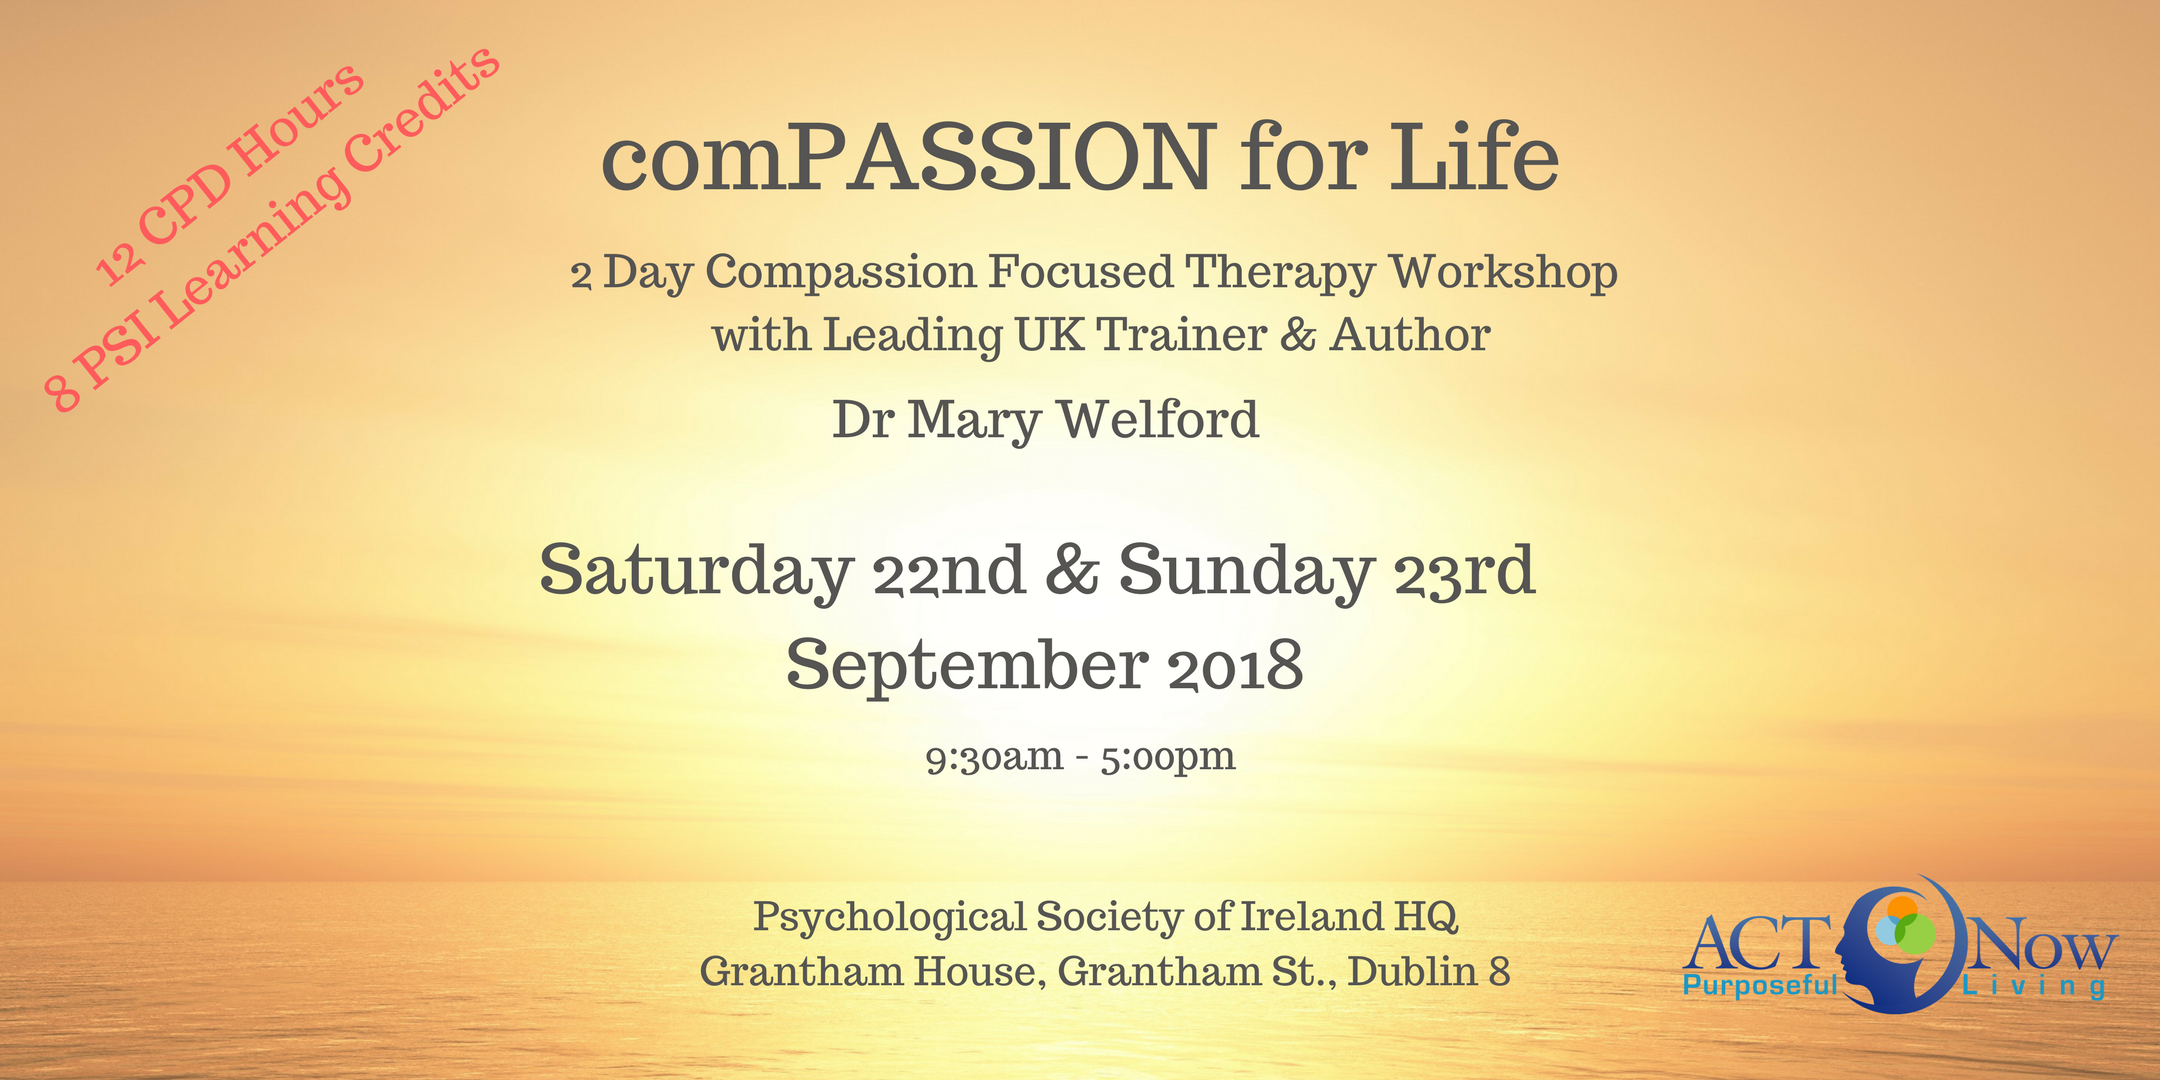 2-Day comPASSION for Life with Leading UK Trainer and International Author Dr. Mary Welford